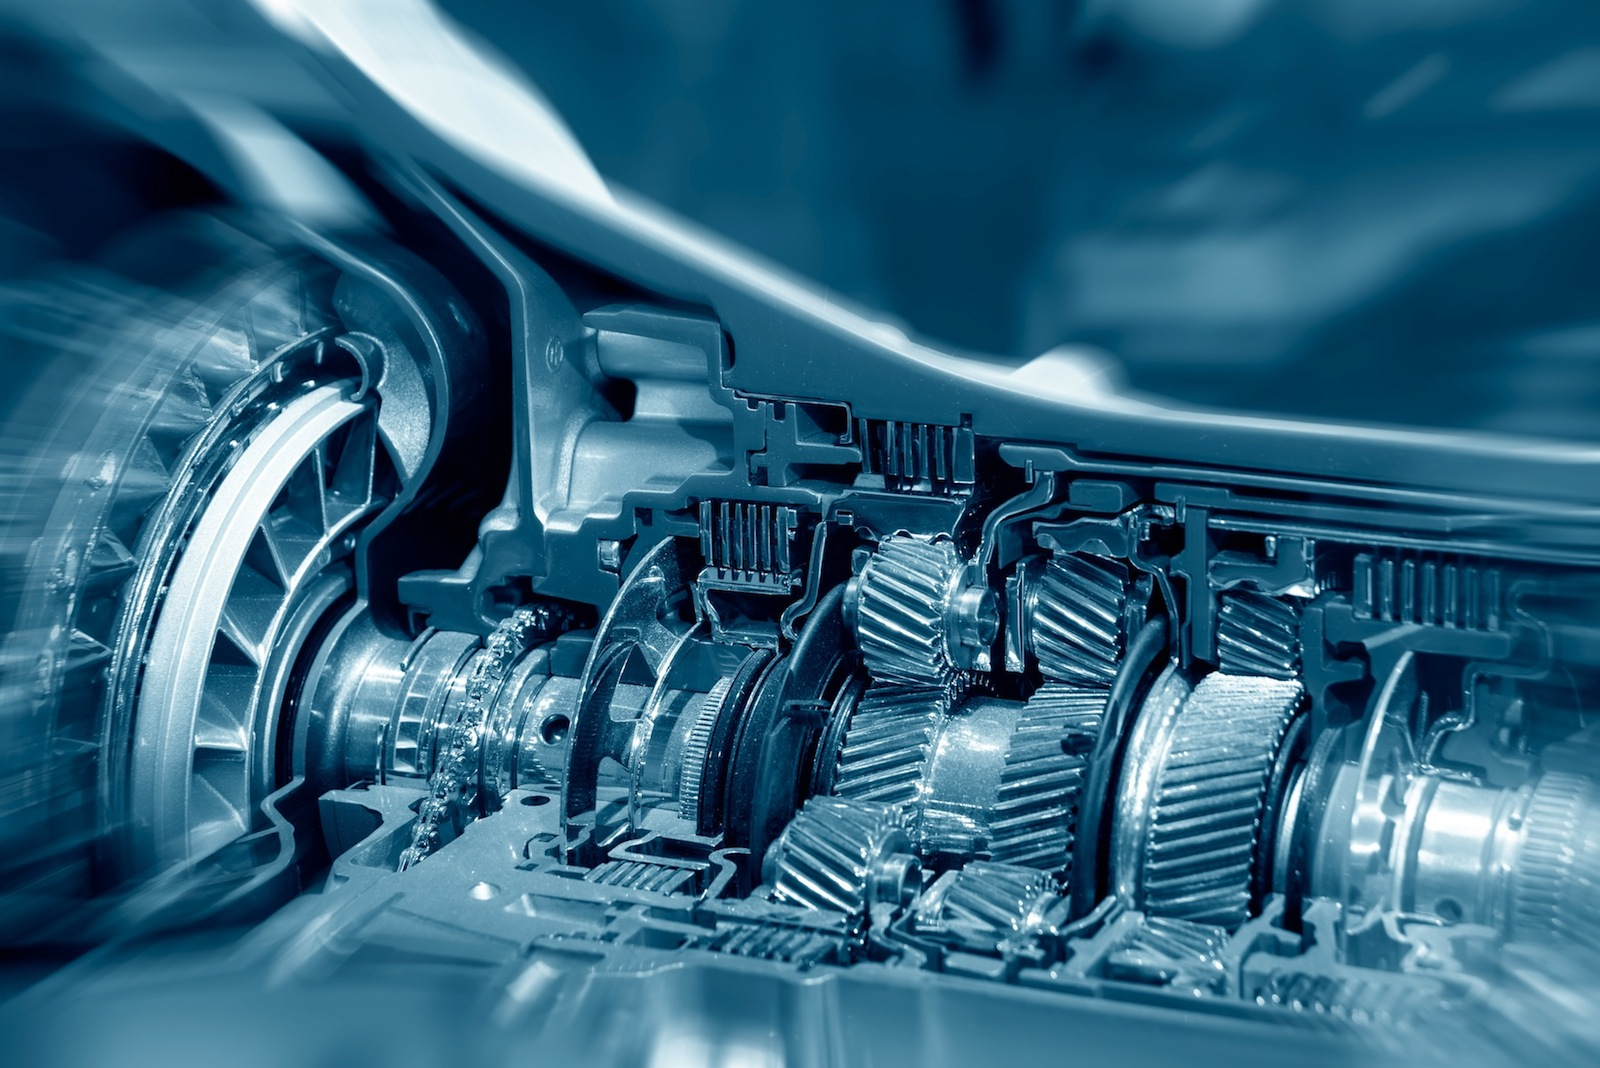 M&A In The Global Automotive Supply Industry: Study Finds A Bull Market With Room To Grow